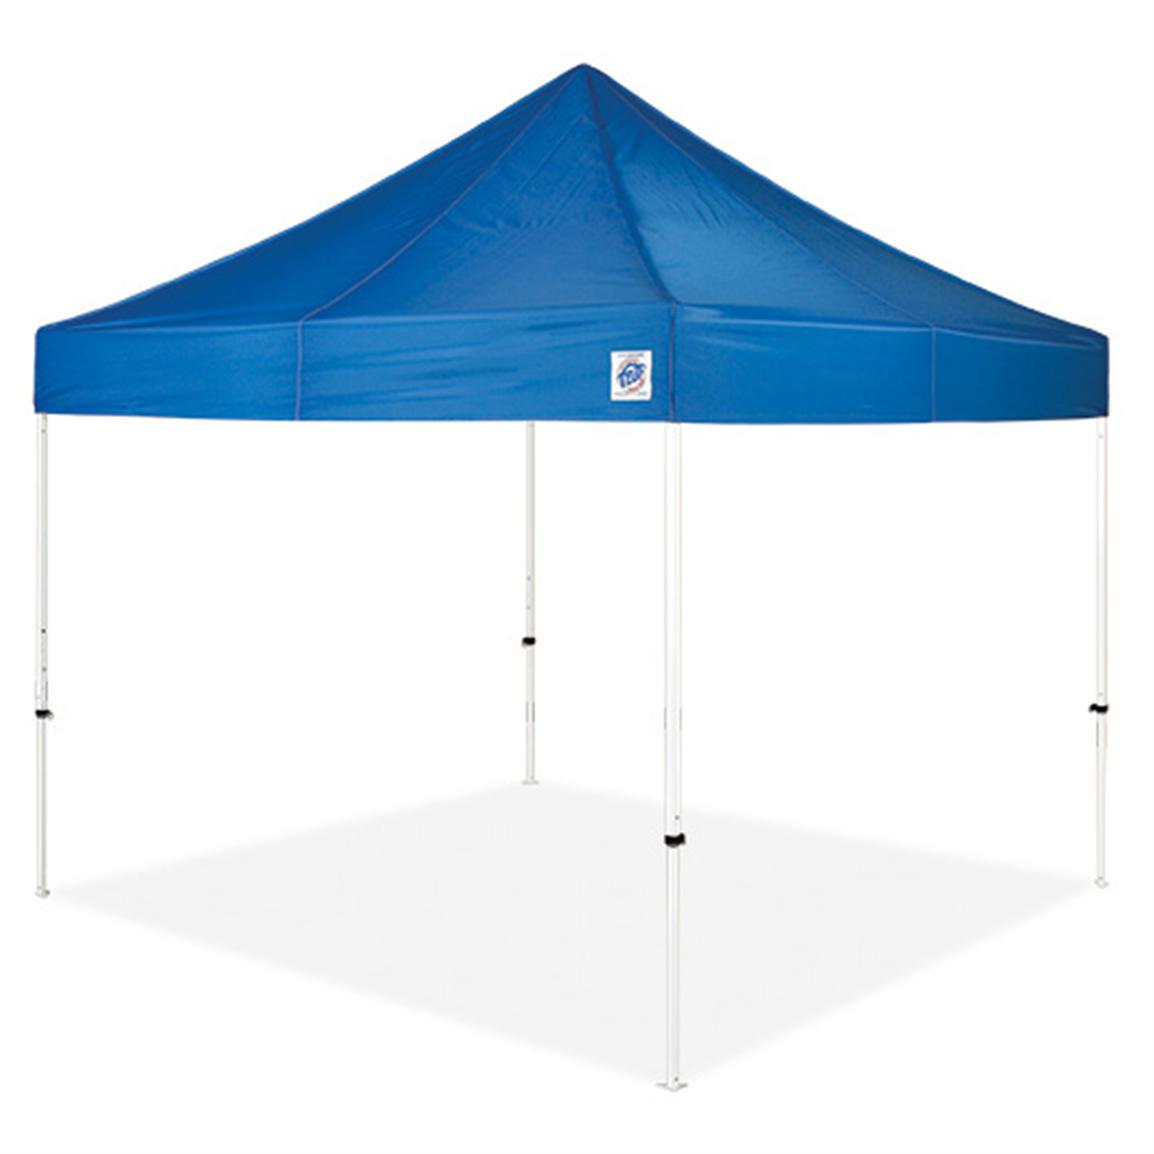 E-Z UP® Vantage™ 10x10 foot Instant Shelter® Canopy, Blue